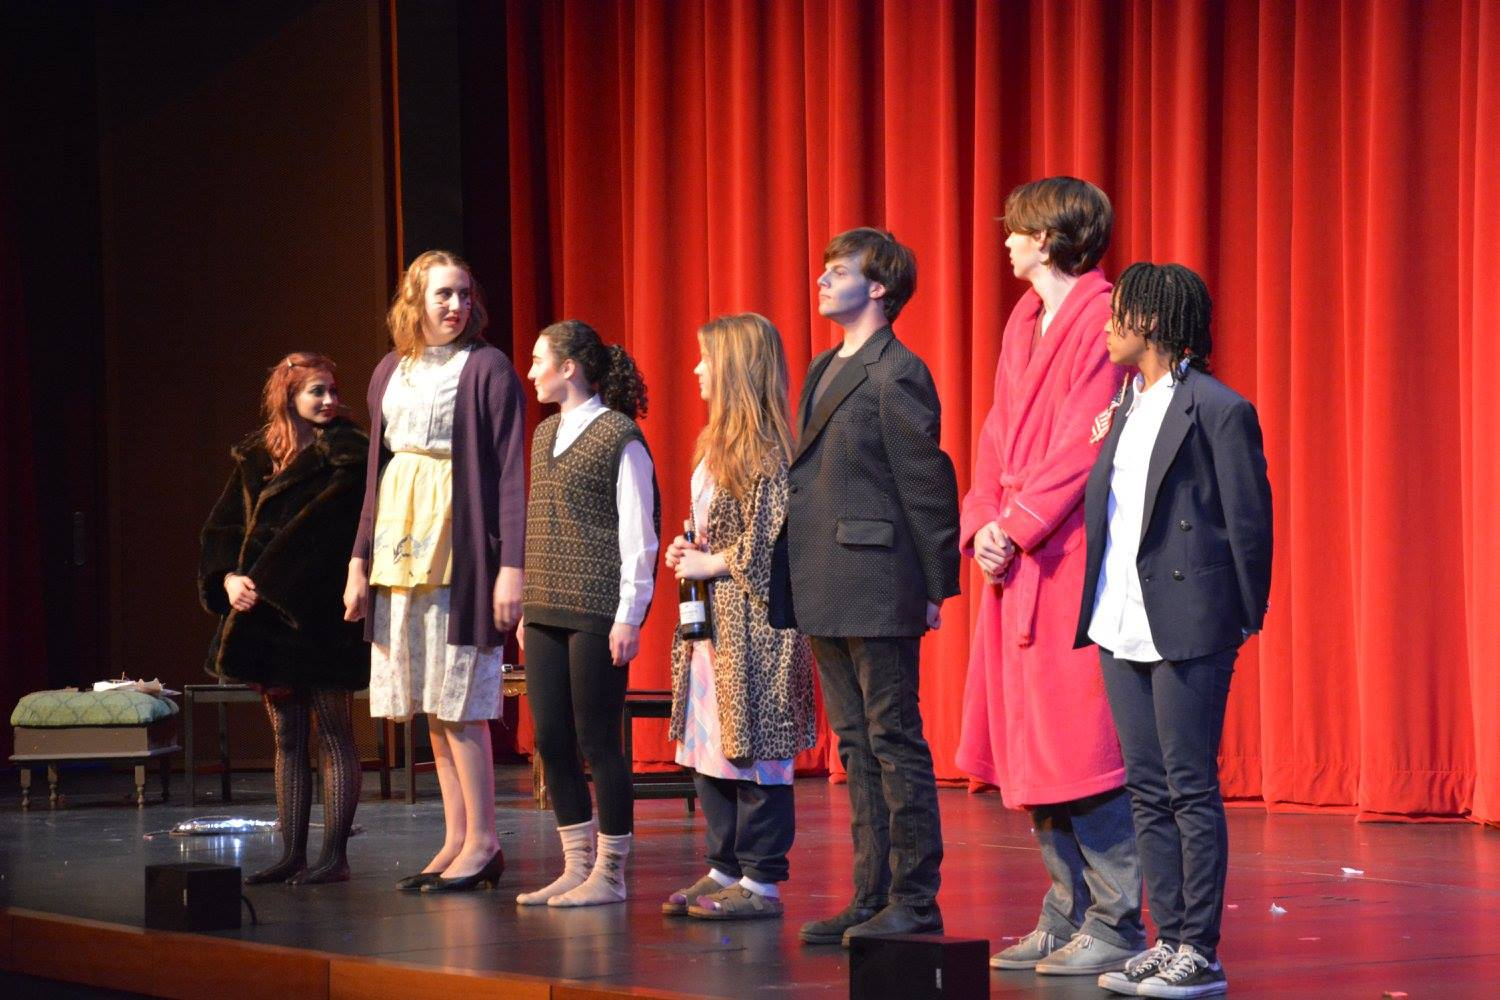 The+One+Acts+held+on+Jan.+28+in+the+Huss+Center+highlight+student+acting+and+student+directing.+%28From+left+to+right%29+senior+Leah+Hughes%2C+junior+J.J.+Gisselquist%2C+junior+Stephanie+Frisch%2C+junior+Ellie+Findell%2C+senior+Ivan+Gunther%2C+senior+Paul+Watkins+and+sophomore+Rachael+Johnson+perform+a+student+written+play.+